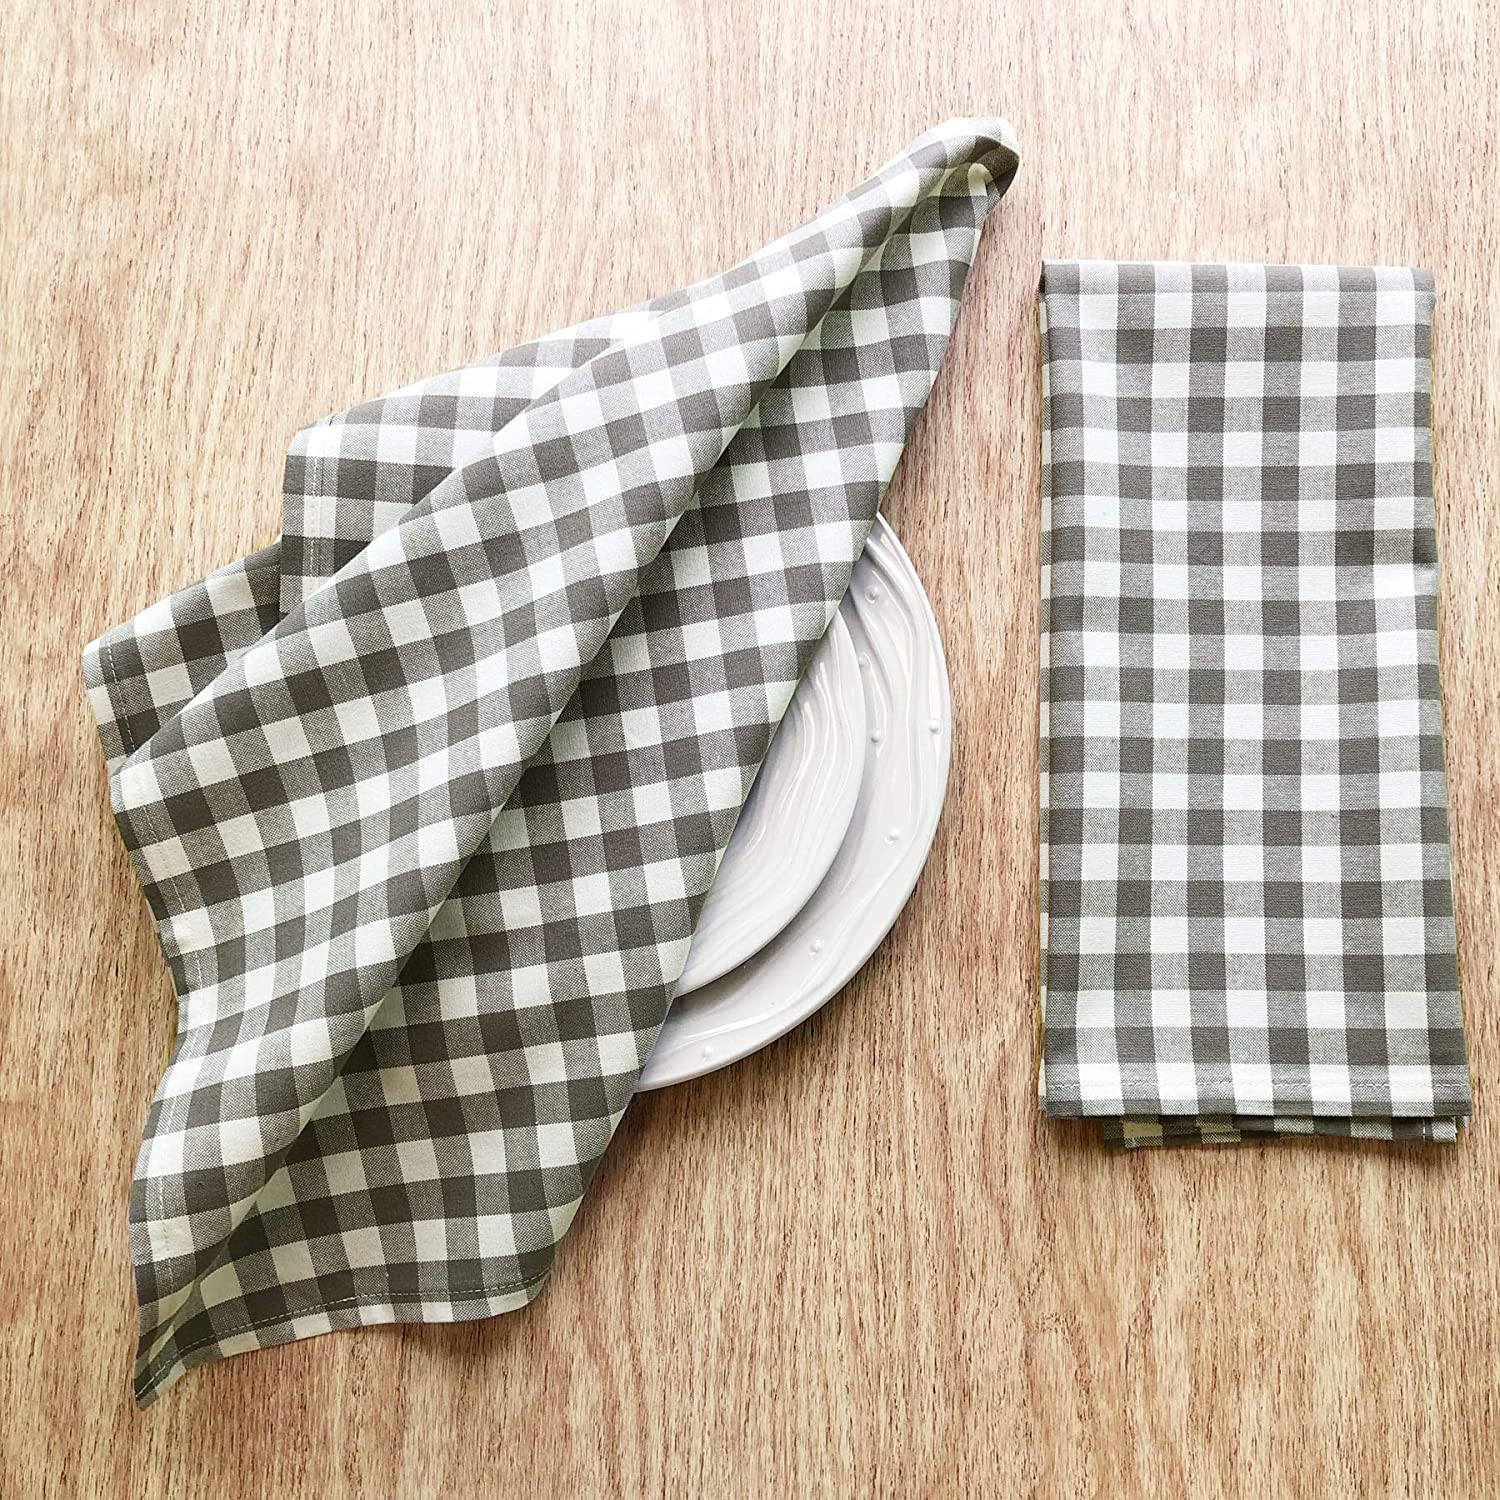 CAIT CHAPMAN HOME COLLECTION Simple Pure Cotton Soft and Absorbent Fabric Woven Dish Towels/Tea Towels, Pack of 2 (Gray Plaid)